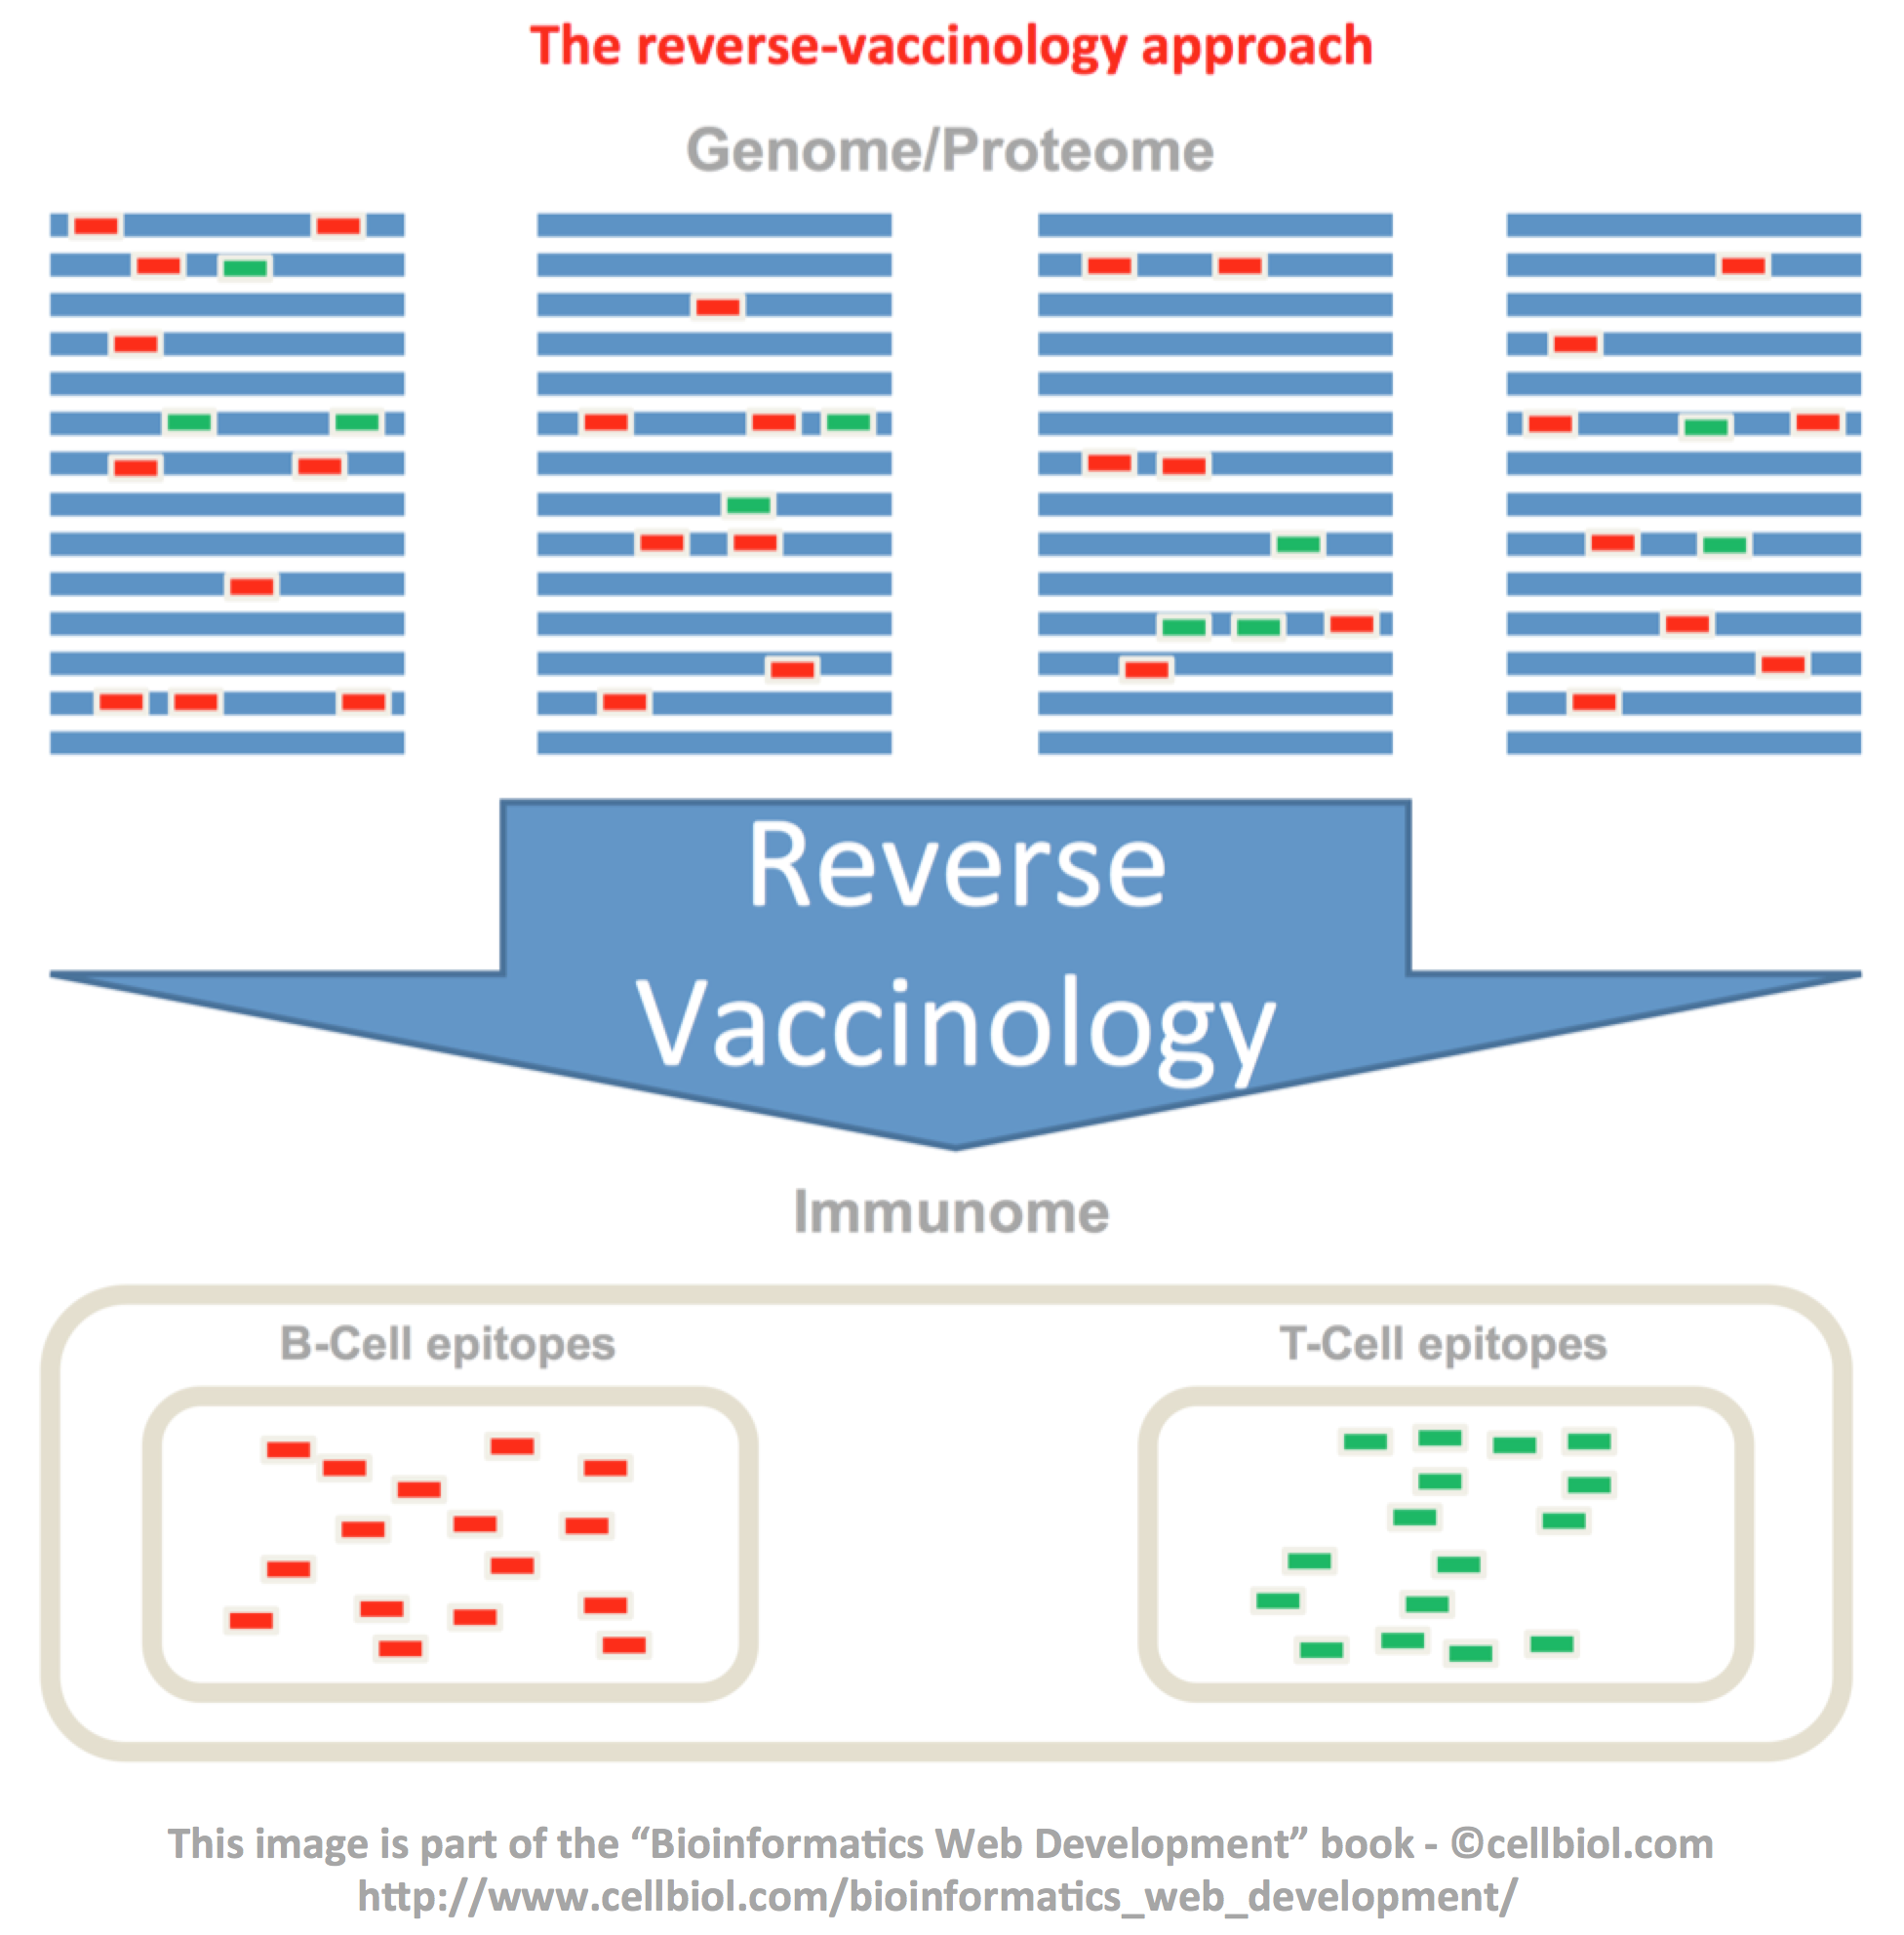 The reverse-vaccinology approach